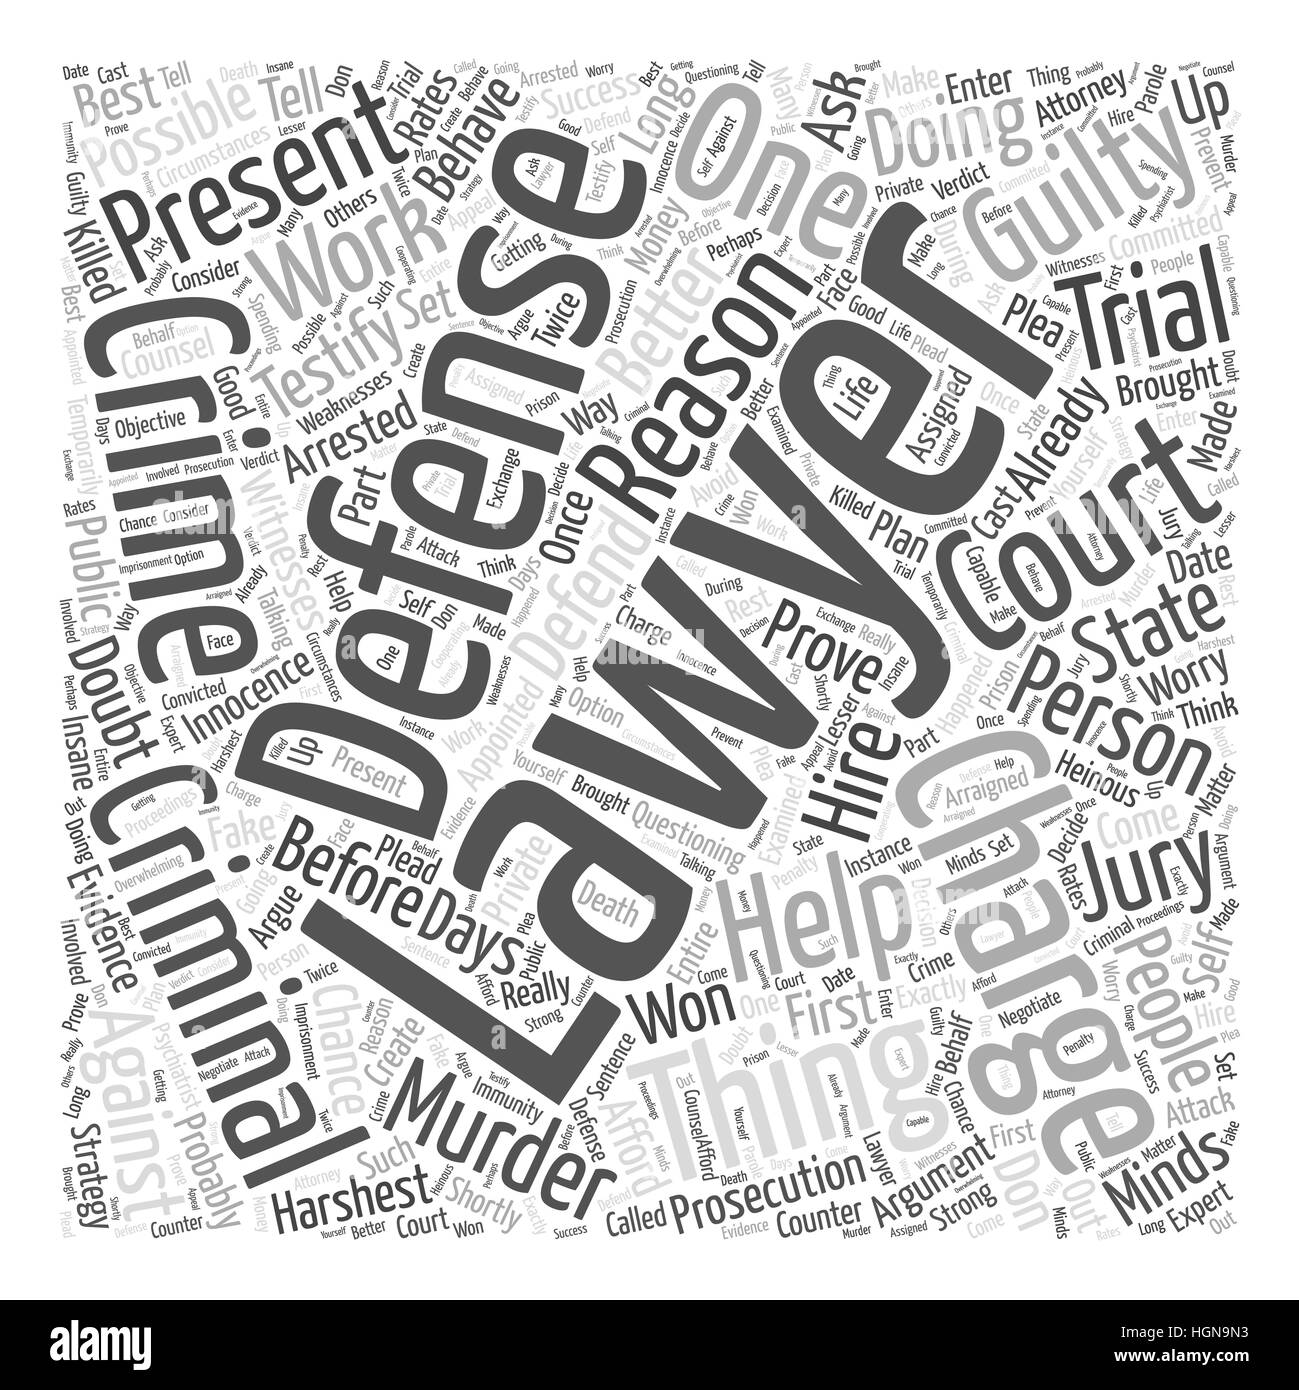 A Criminal Defense Lawyer Can Help You Defend Against Murder Charges Word Cloud Concept - Stock Image